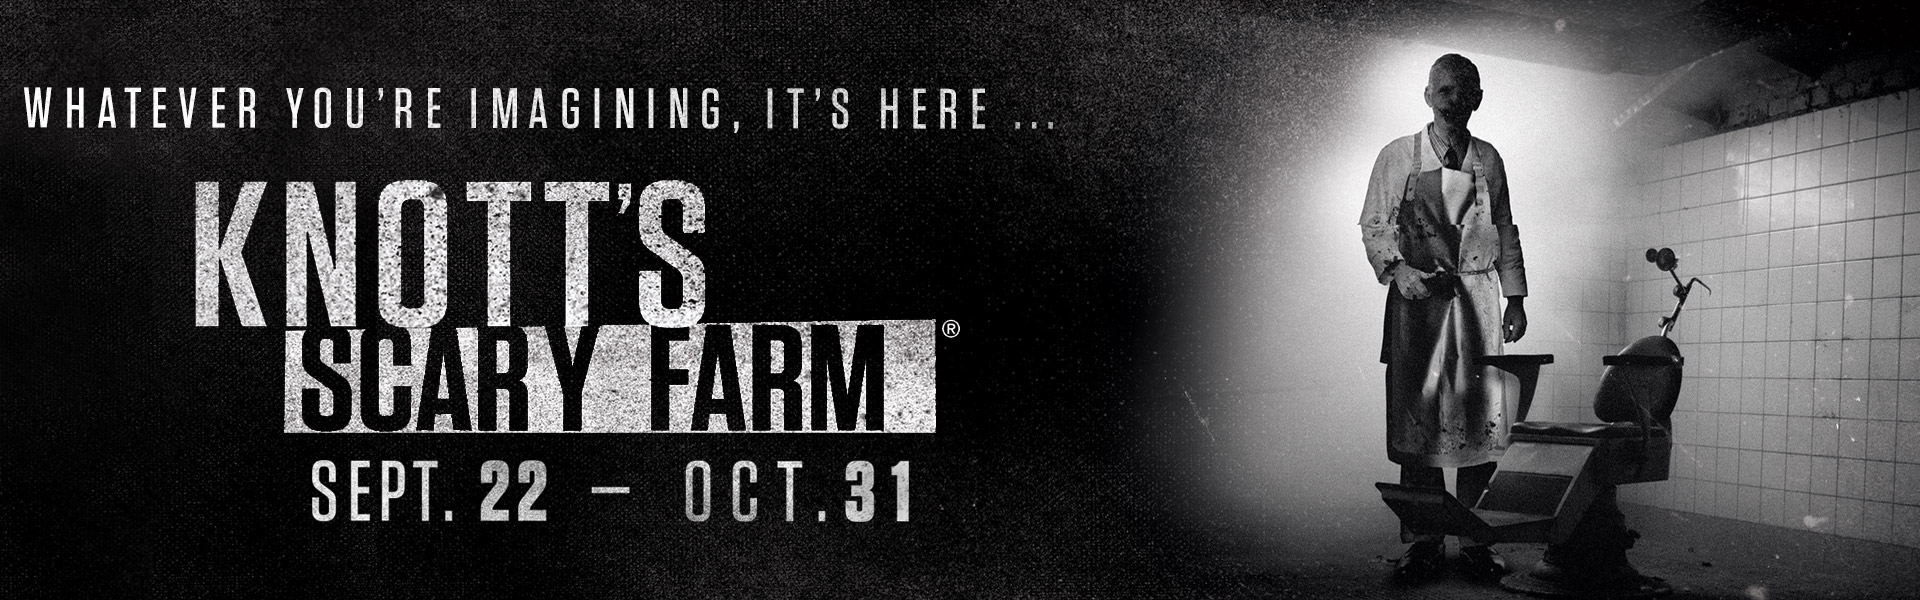 2016 Scary Farm Homepage Rotator 1